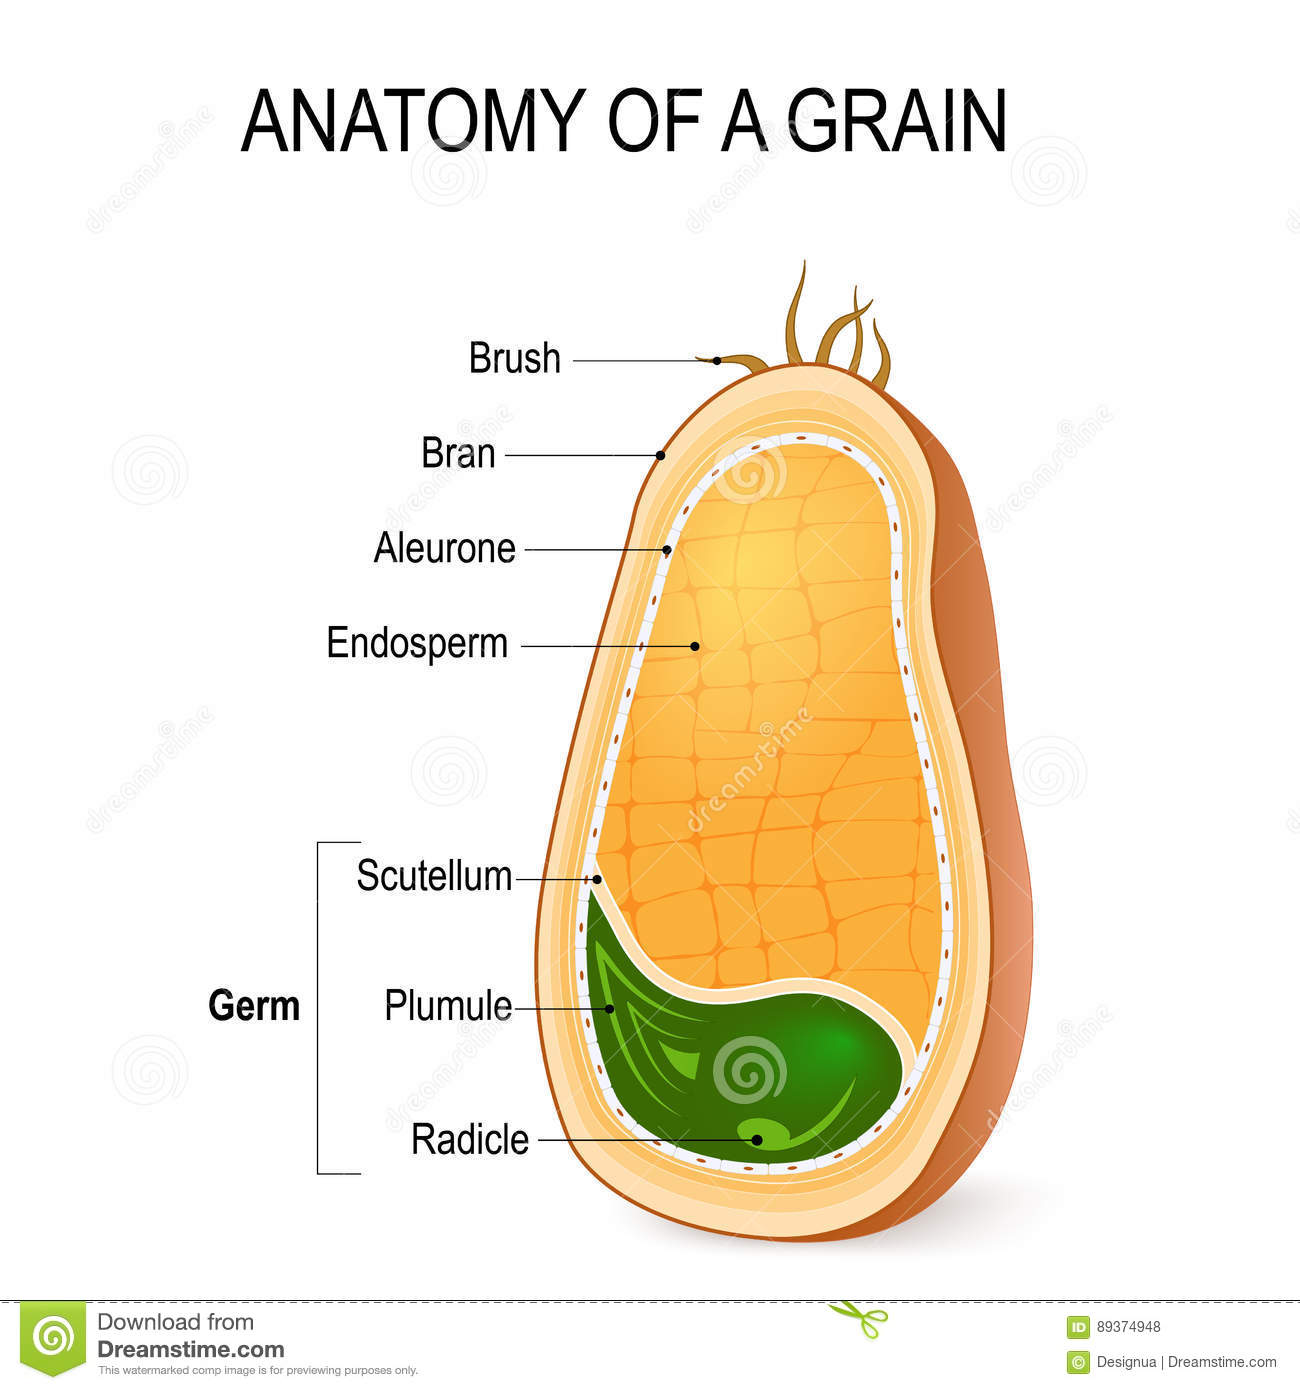 Anatomy Of A Grain  Inside The Seed  Stock Vector